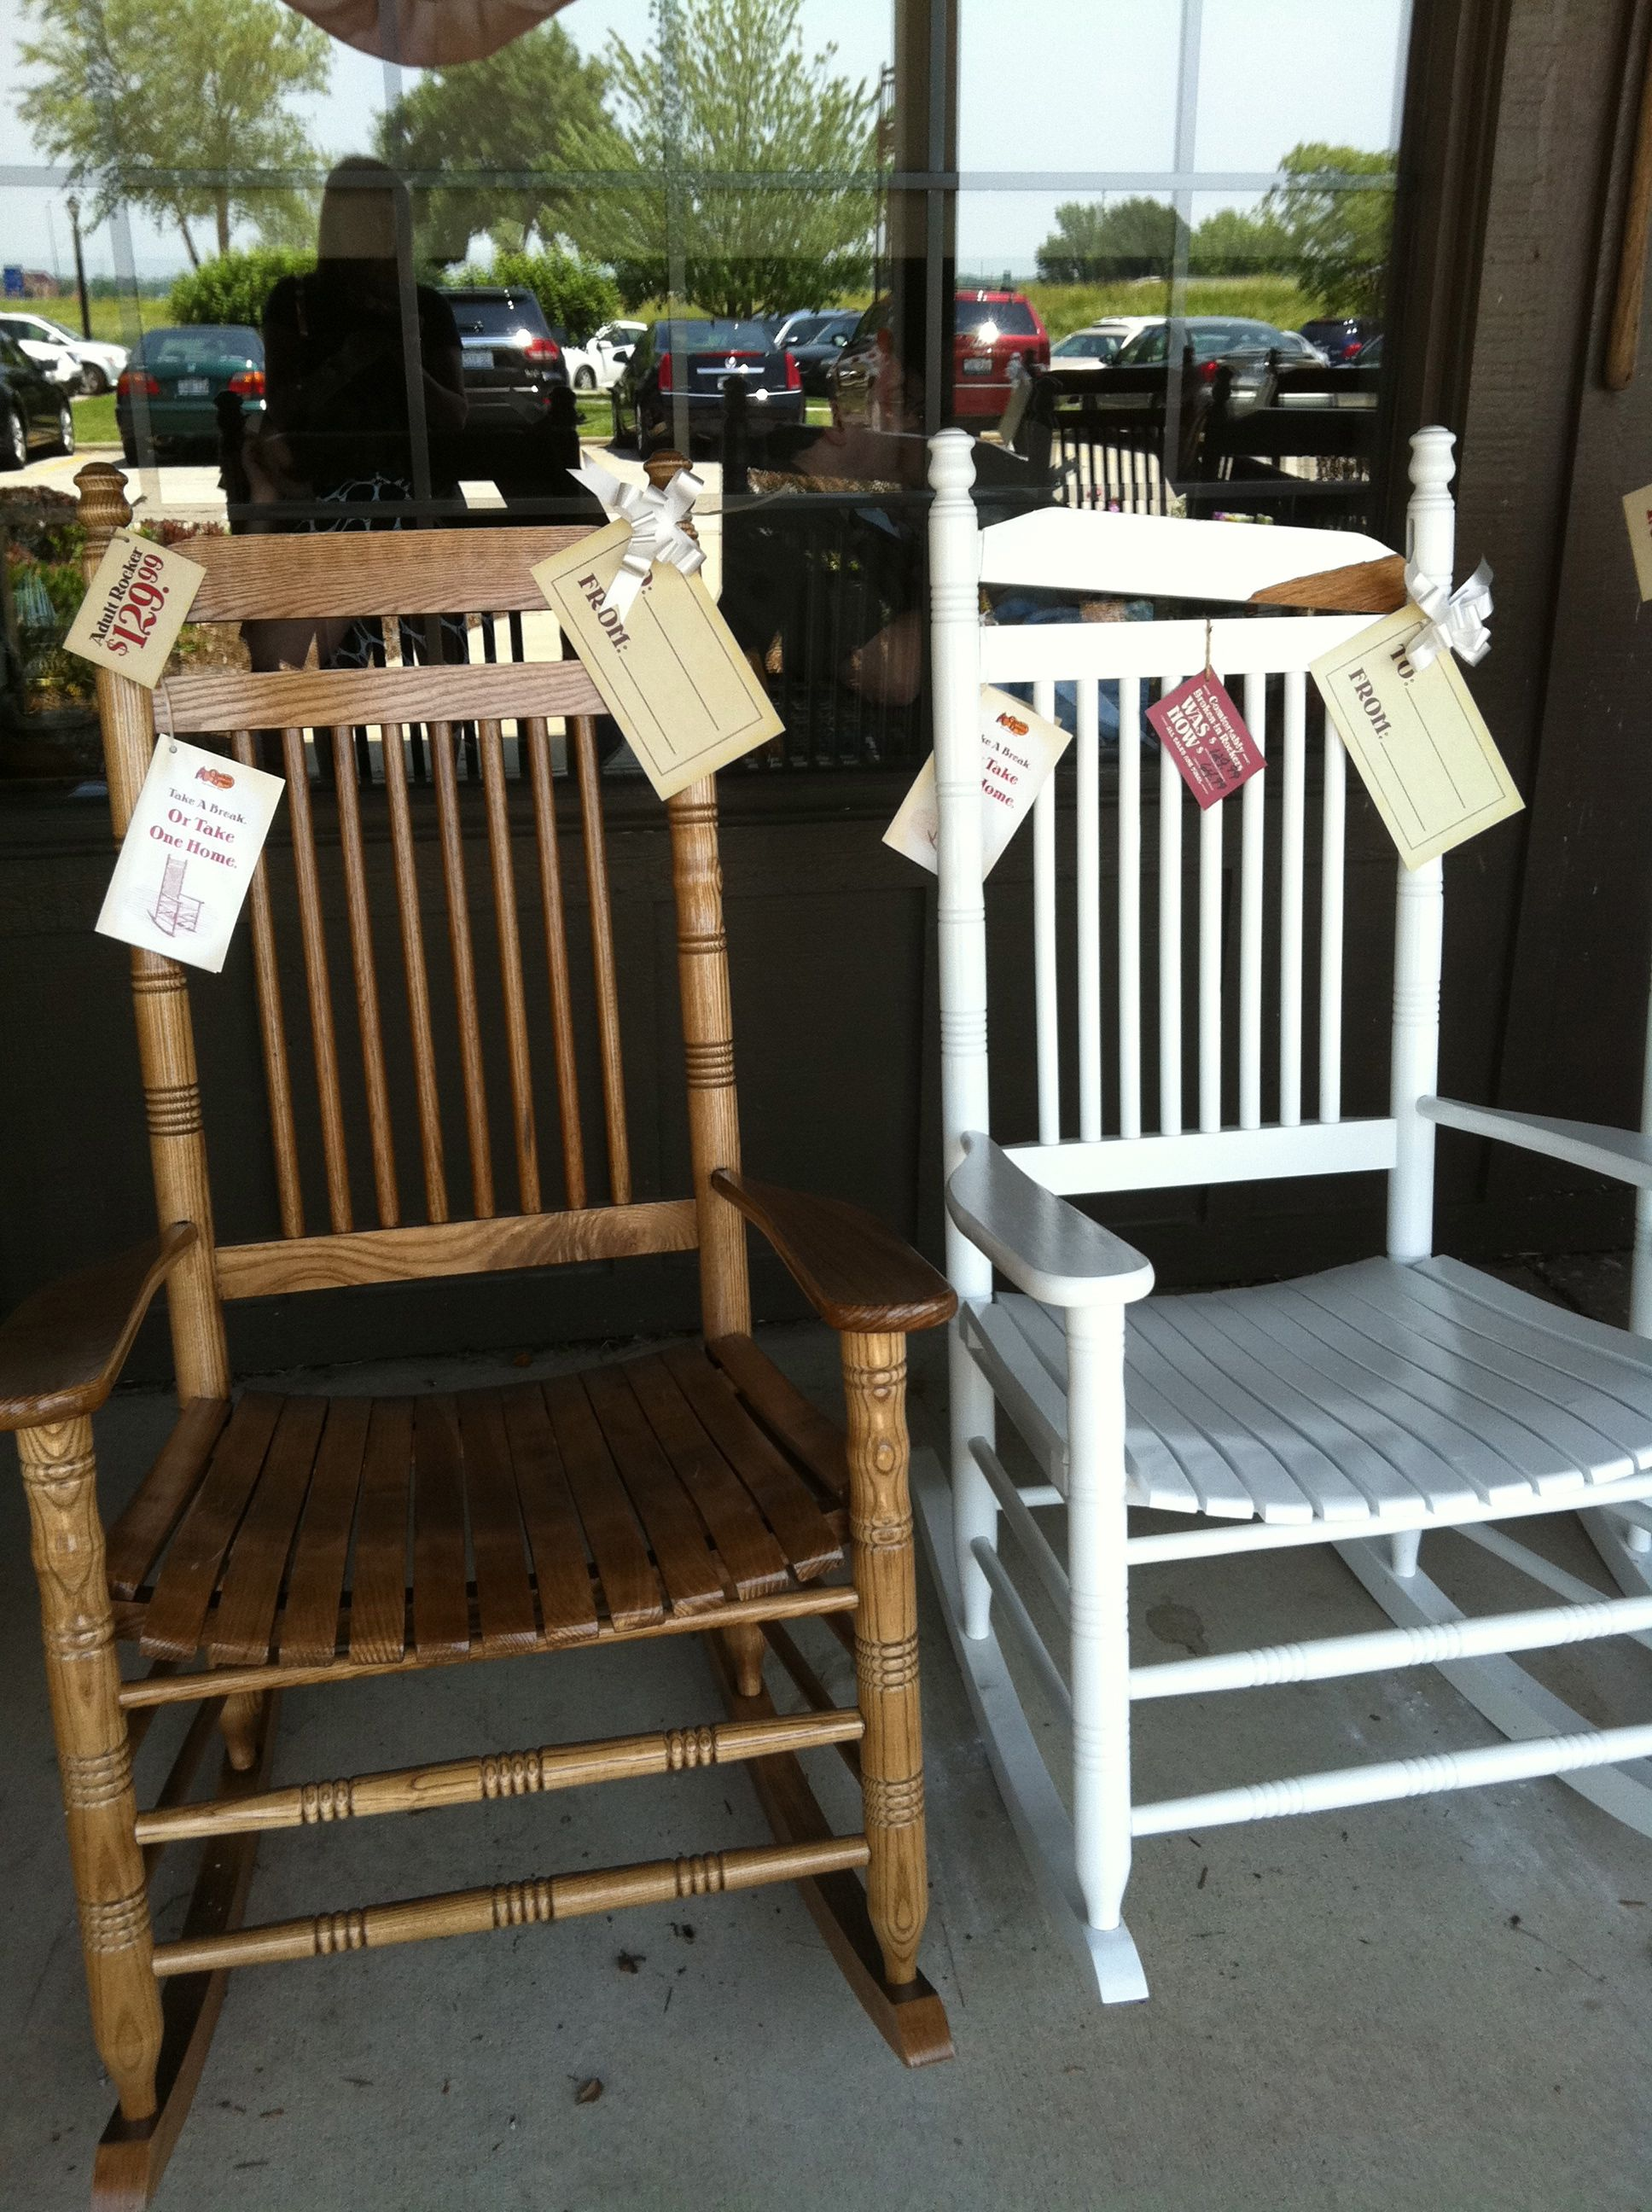 12 chairs menu canyon swing chair new zealand cracker barrel nation  everyday epistle